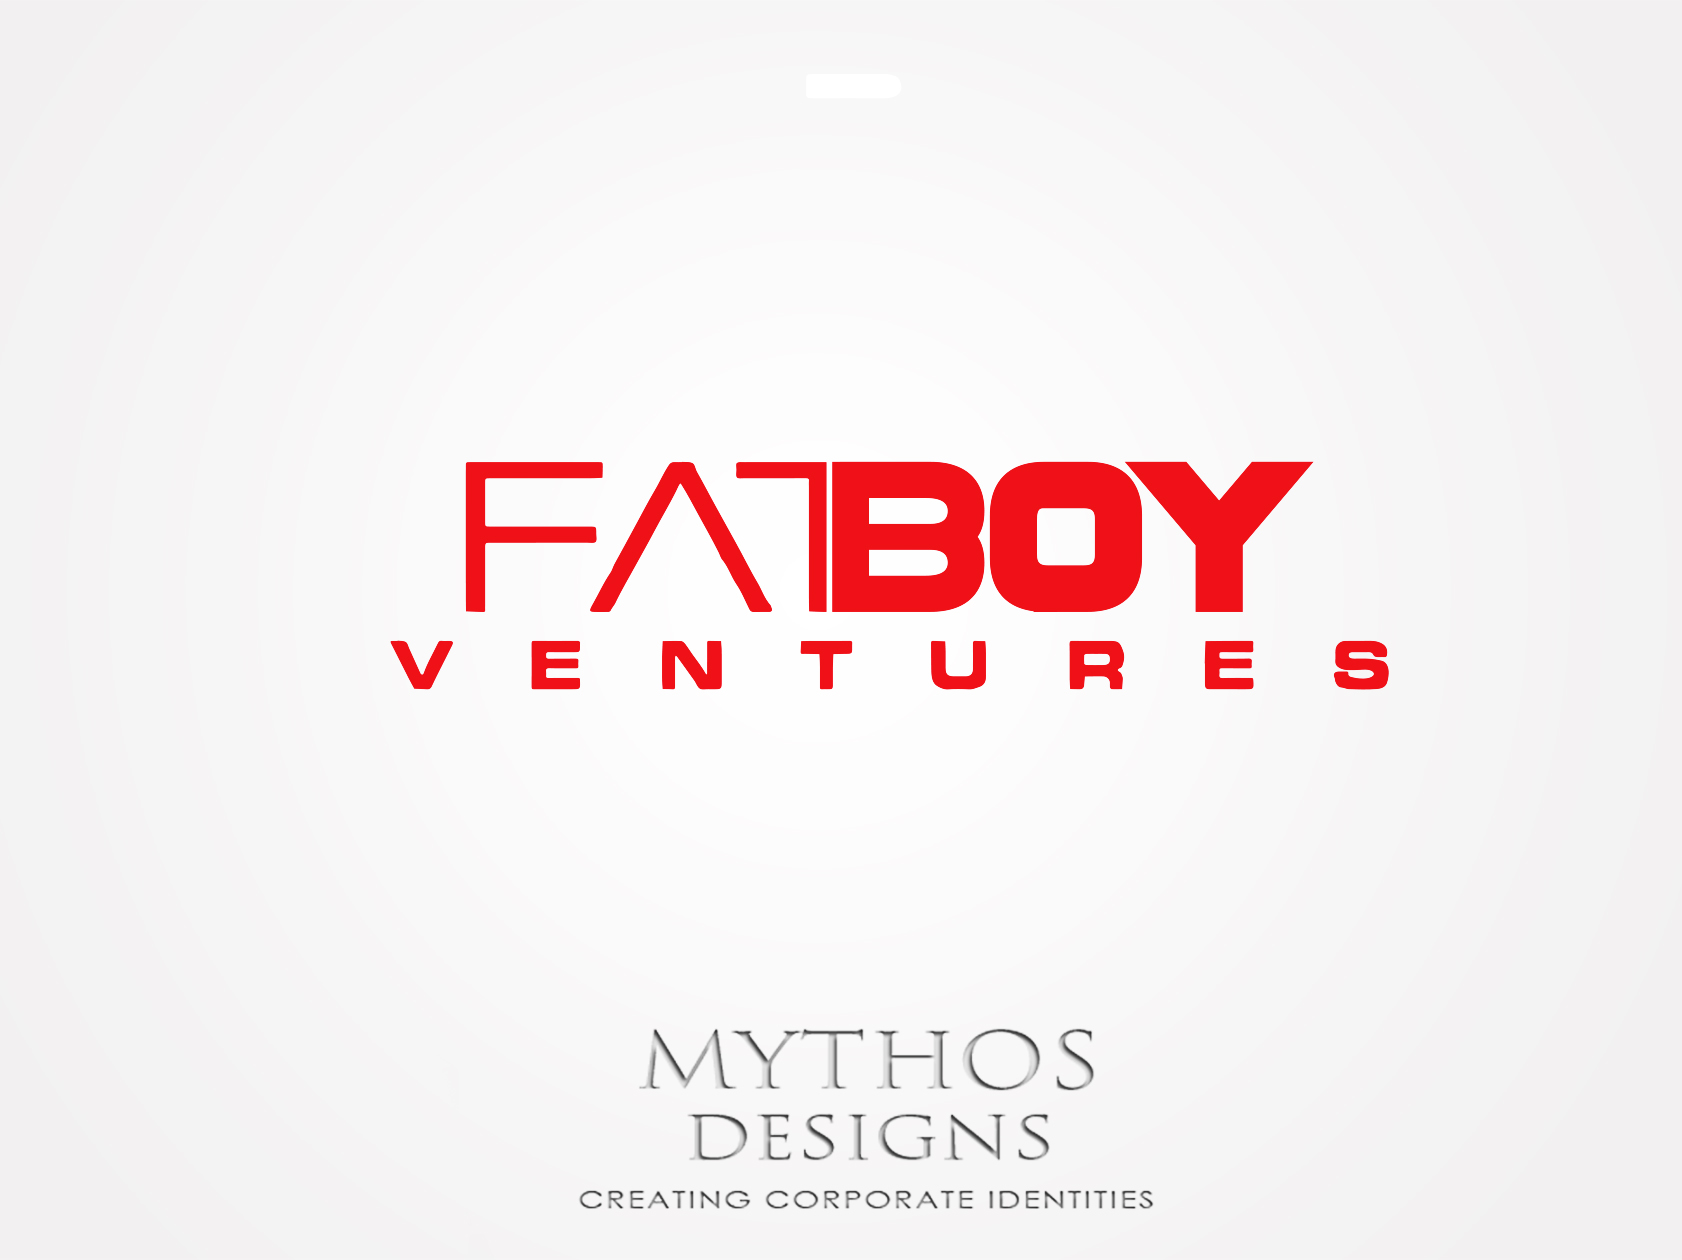 Logo Design by Mythos Designs - Entry No. 108 in the Logo Design Contest Fun Logo Design for Fat Boy Ventures.